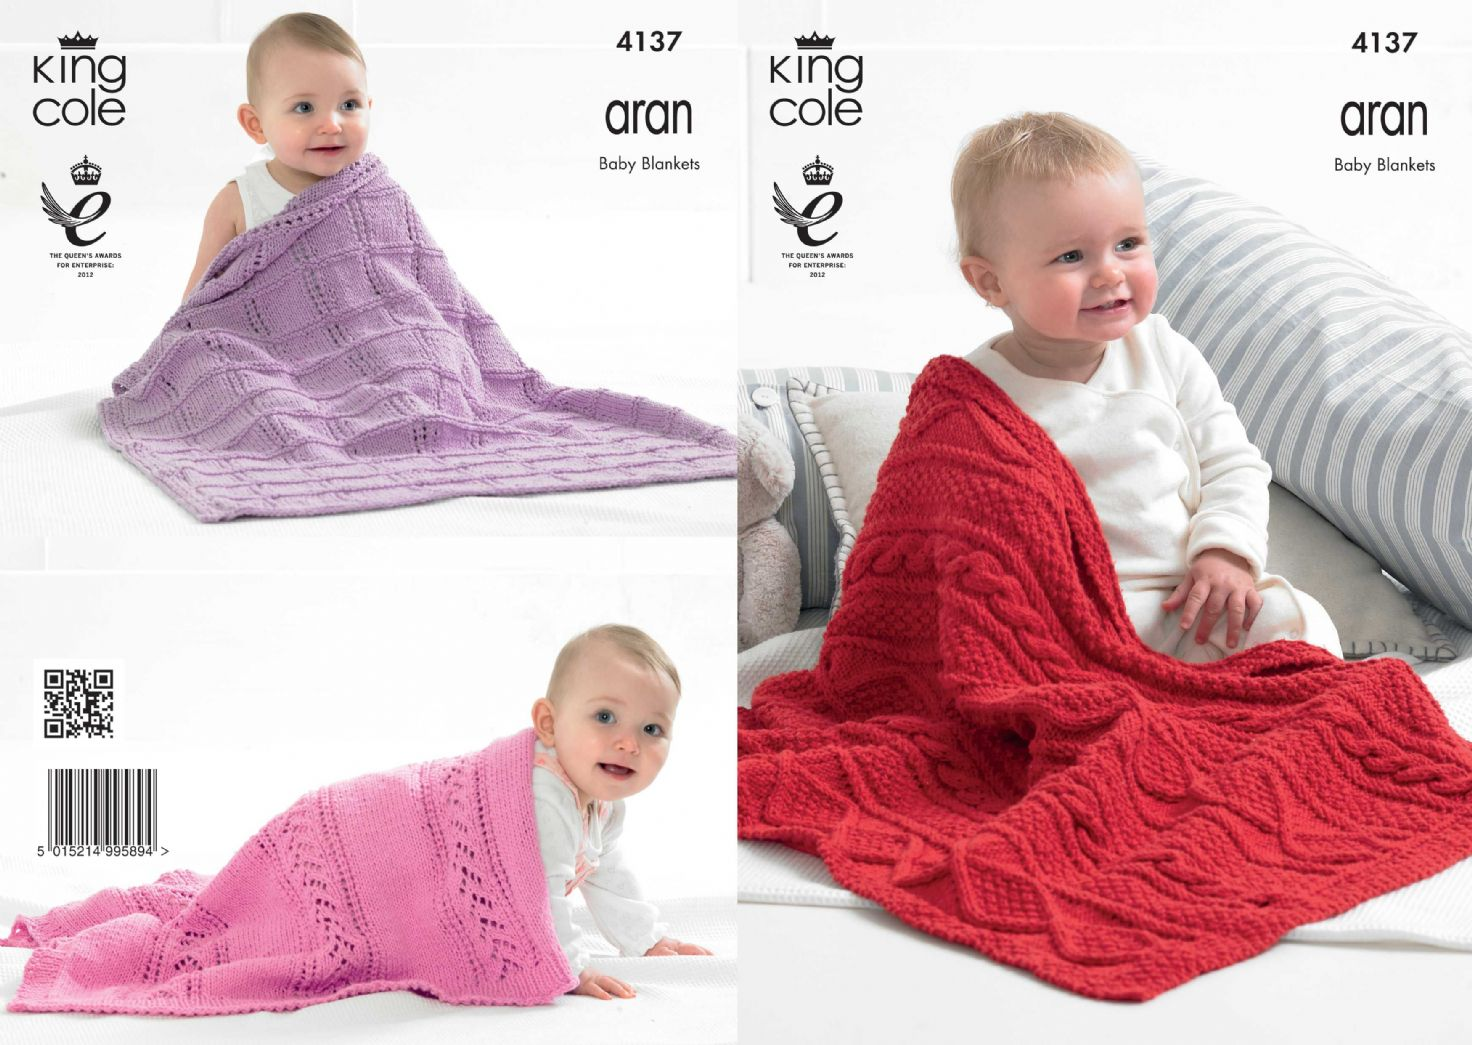 4137 king cole big value recycled cotton aran baby blanket 4137 king cole big value recycled cotton aran baby blanket knitting pattern bankloansurffo Choice Image